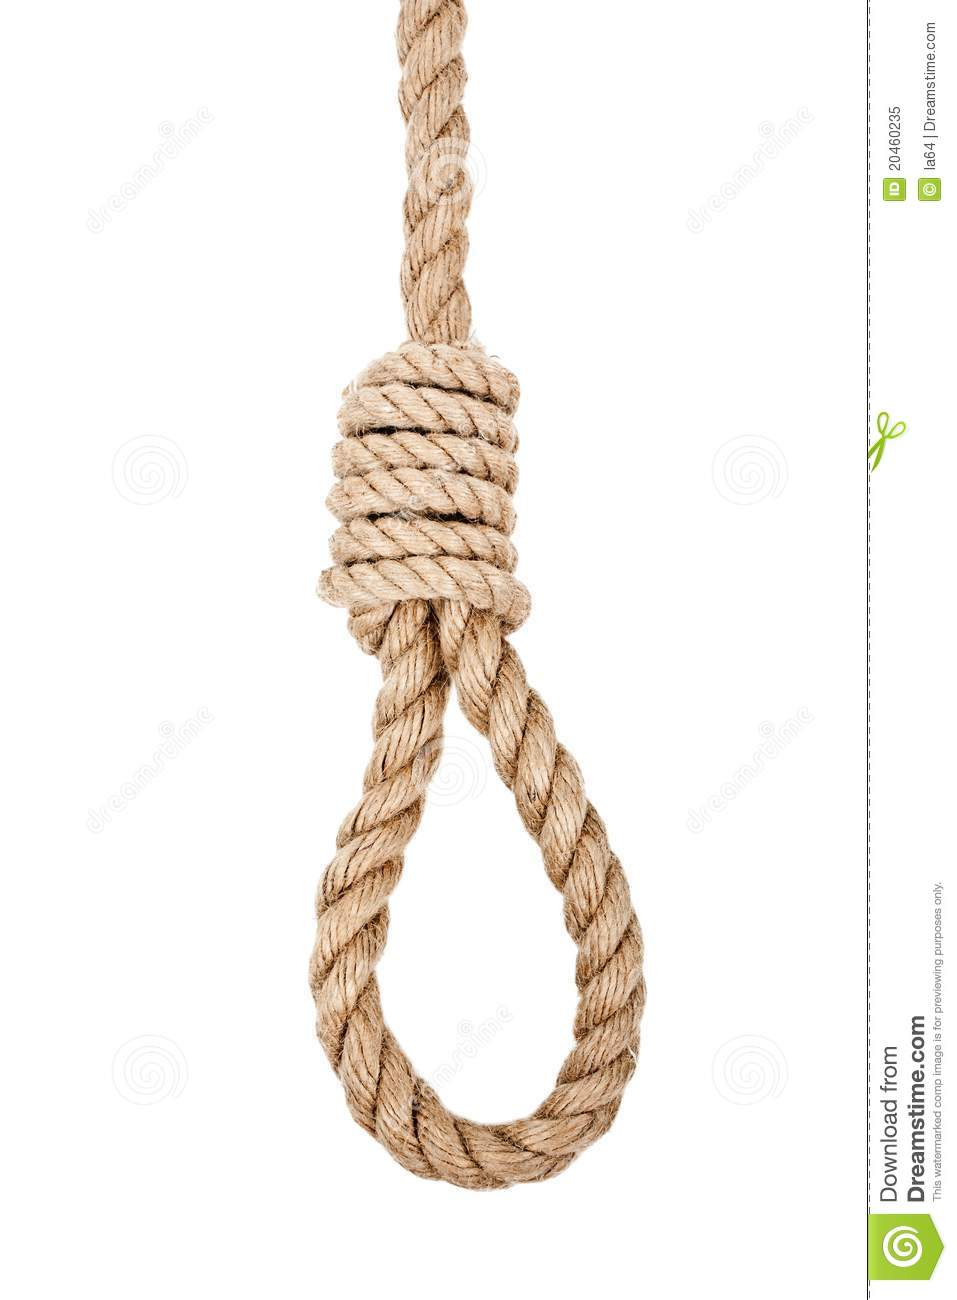 gallows-hanging-rope-20460235